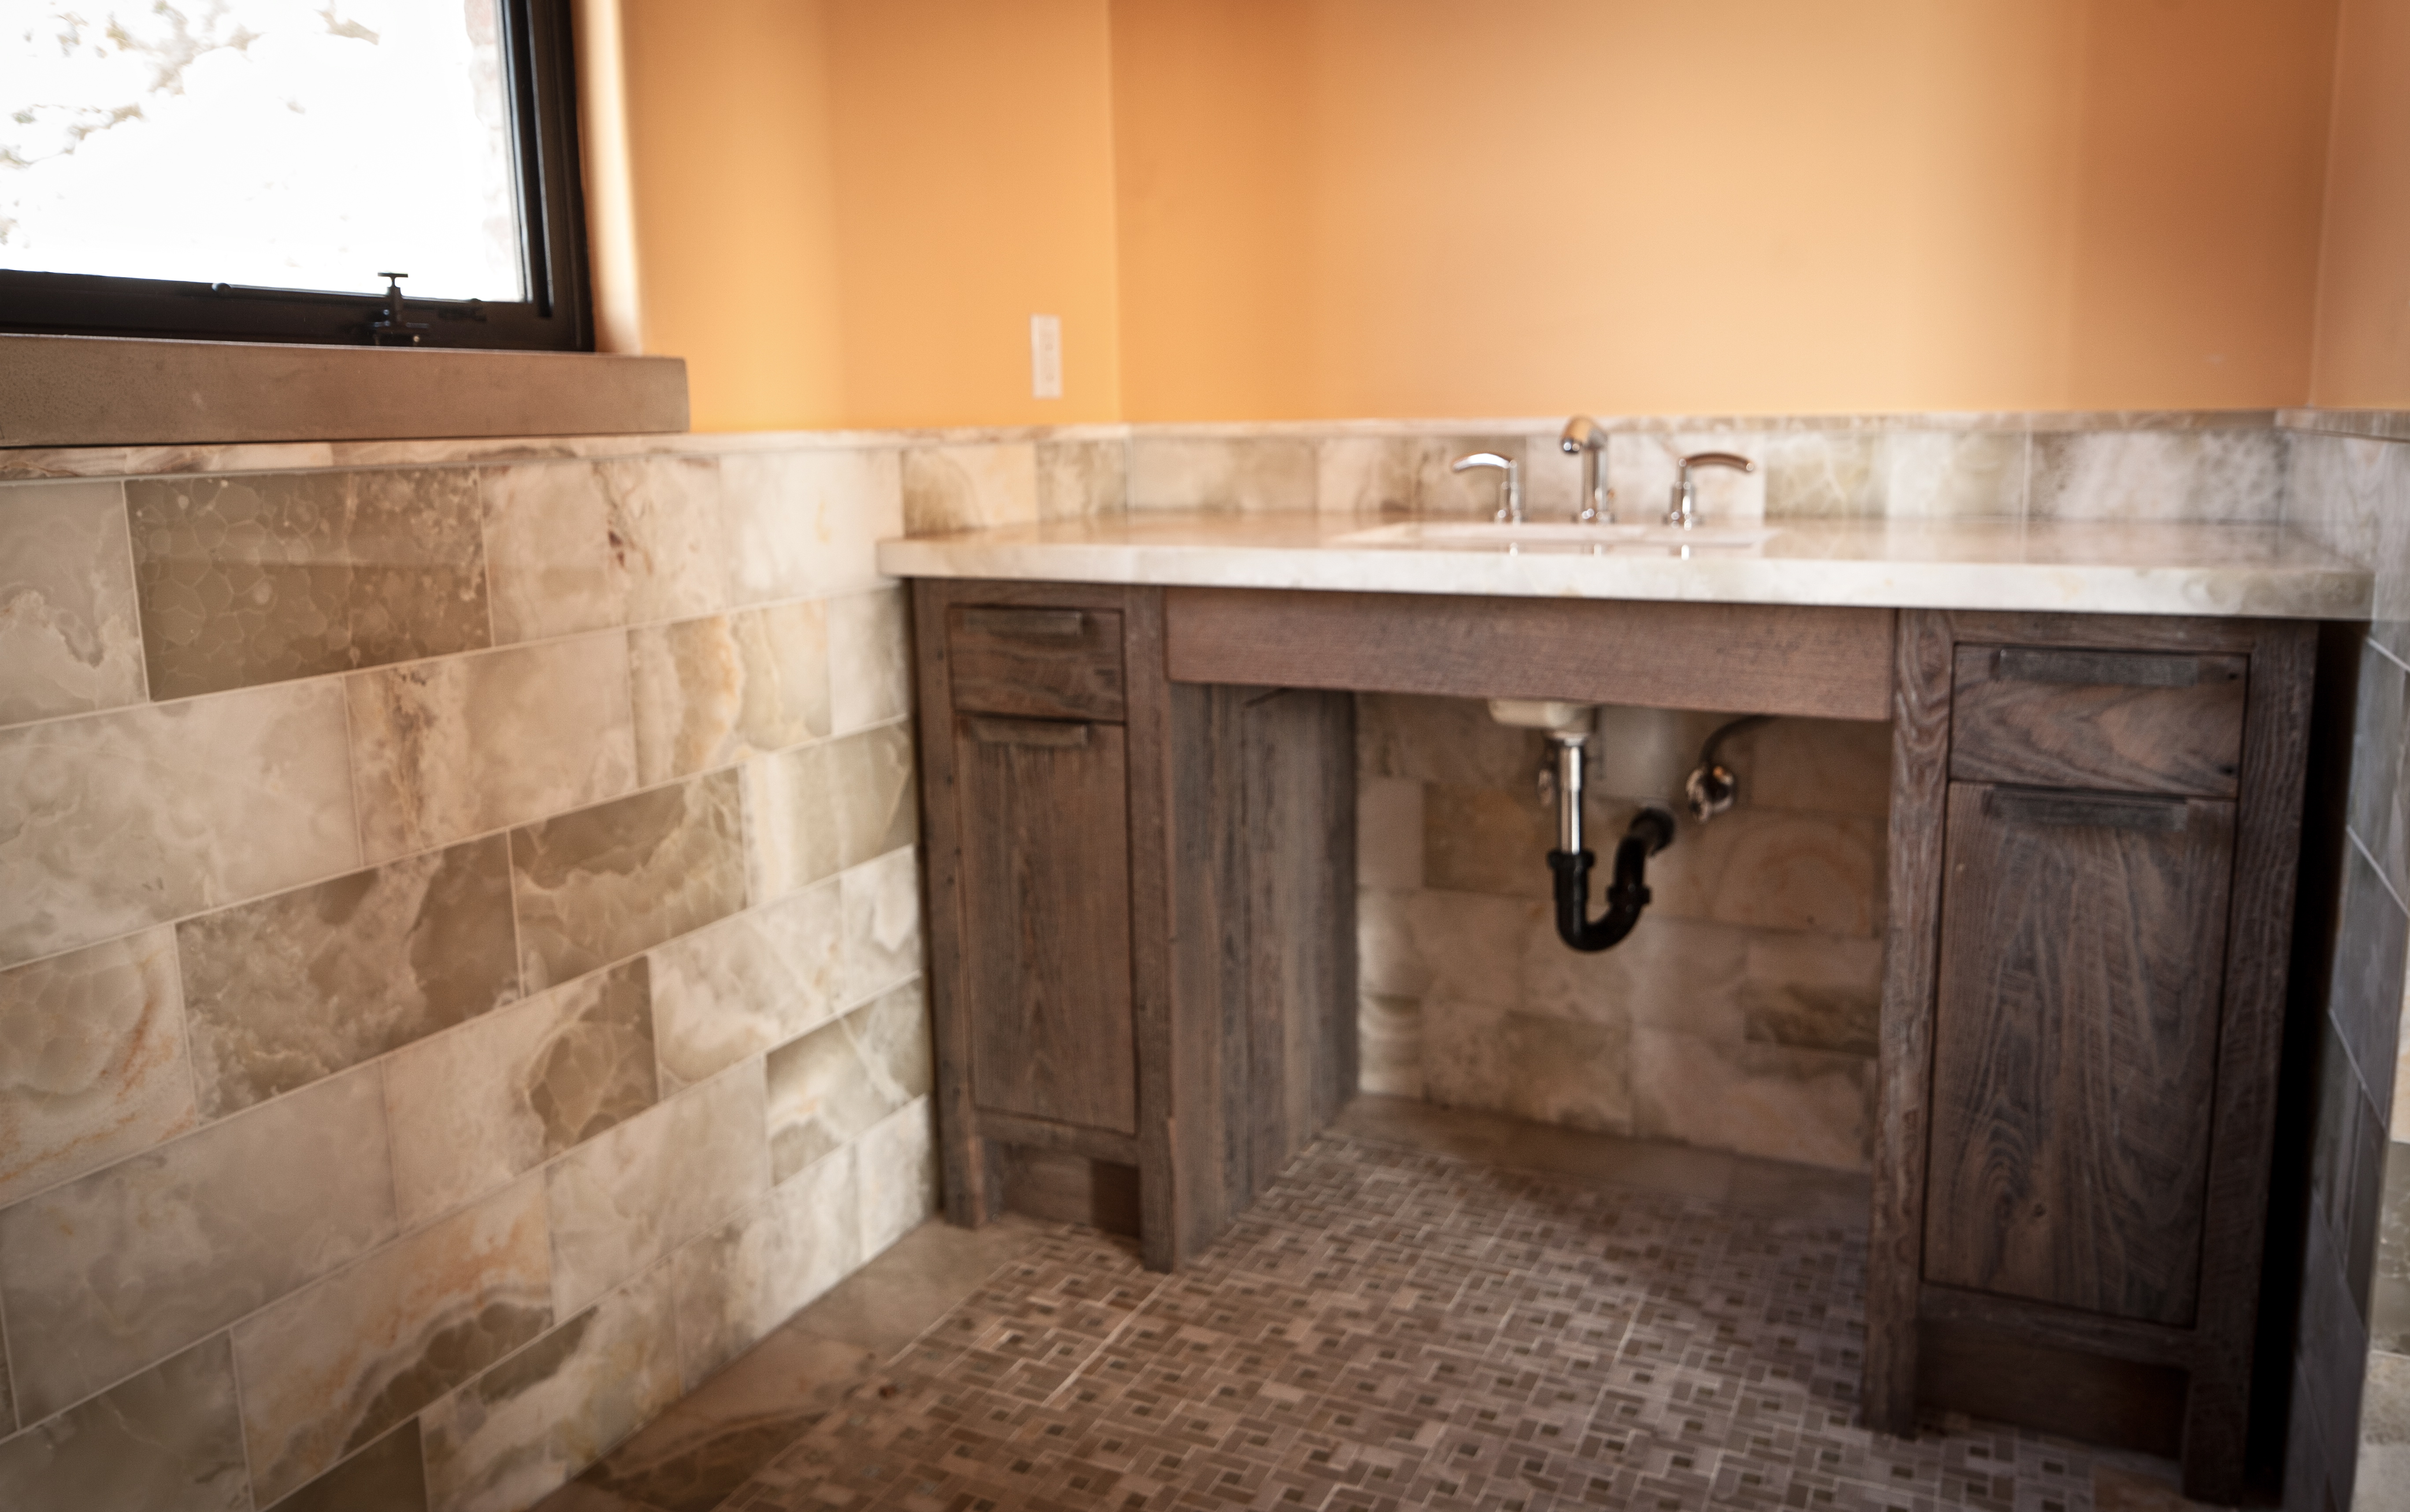 Rustic Modern Bathroom Vanities rustic modern bathroom vanities | ben riddering / shop blog